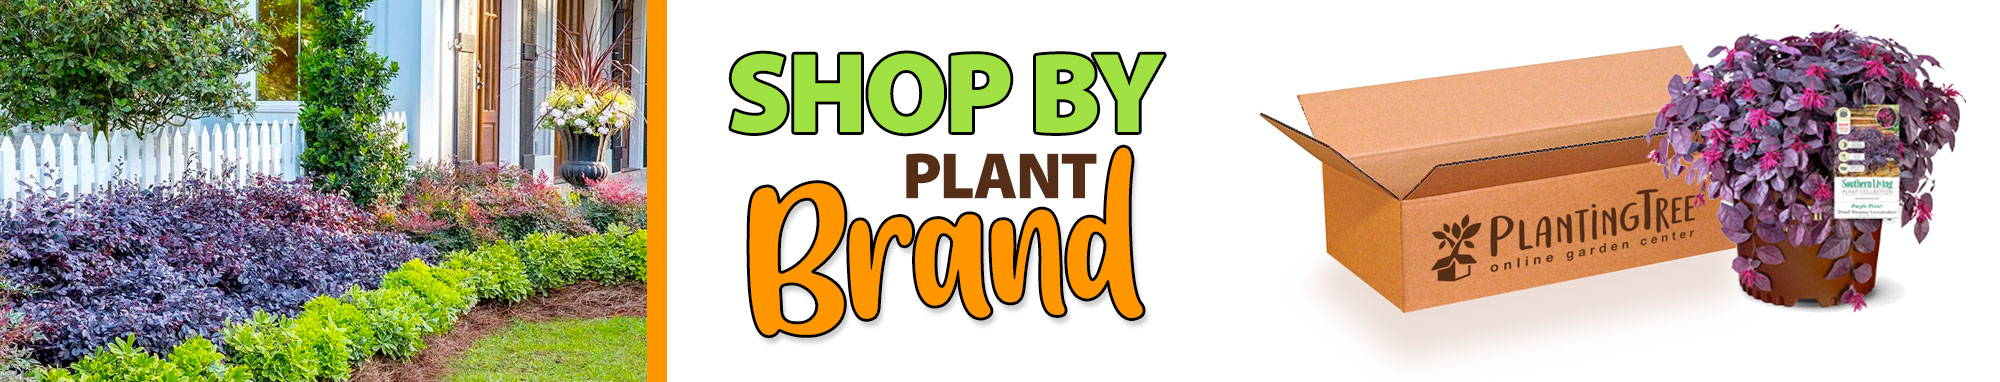 Shop By Plant Brand